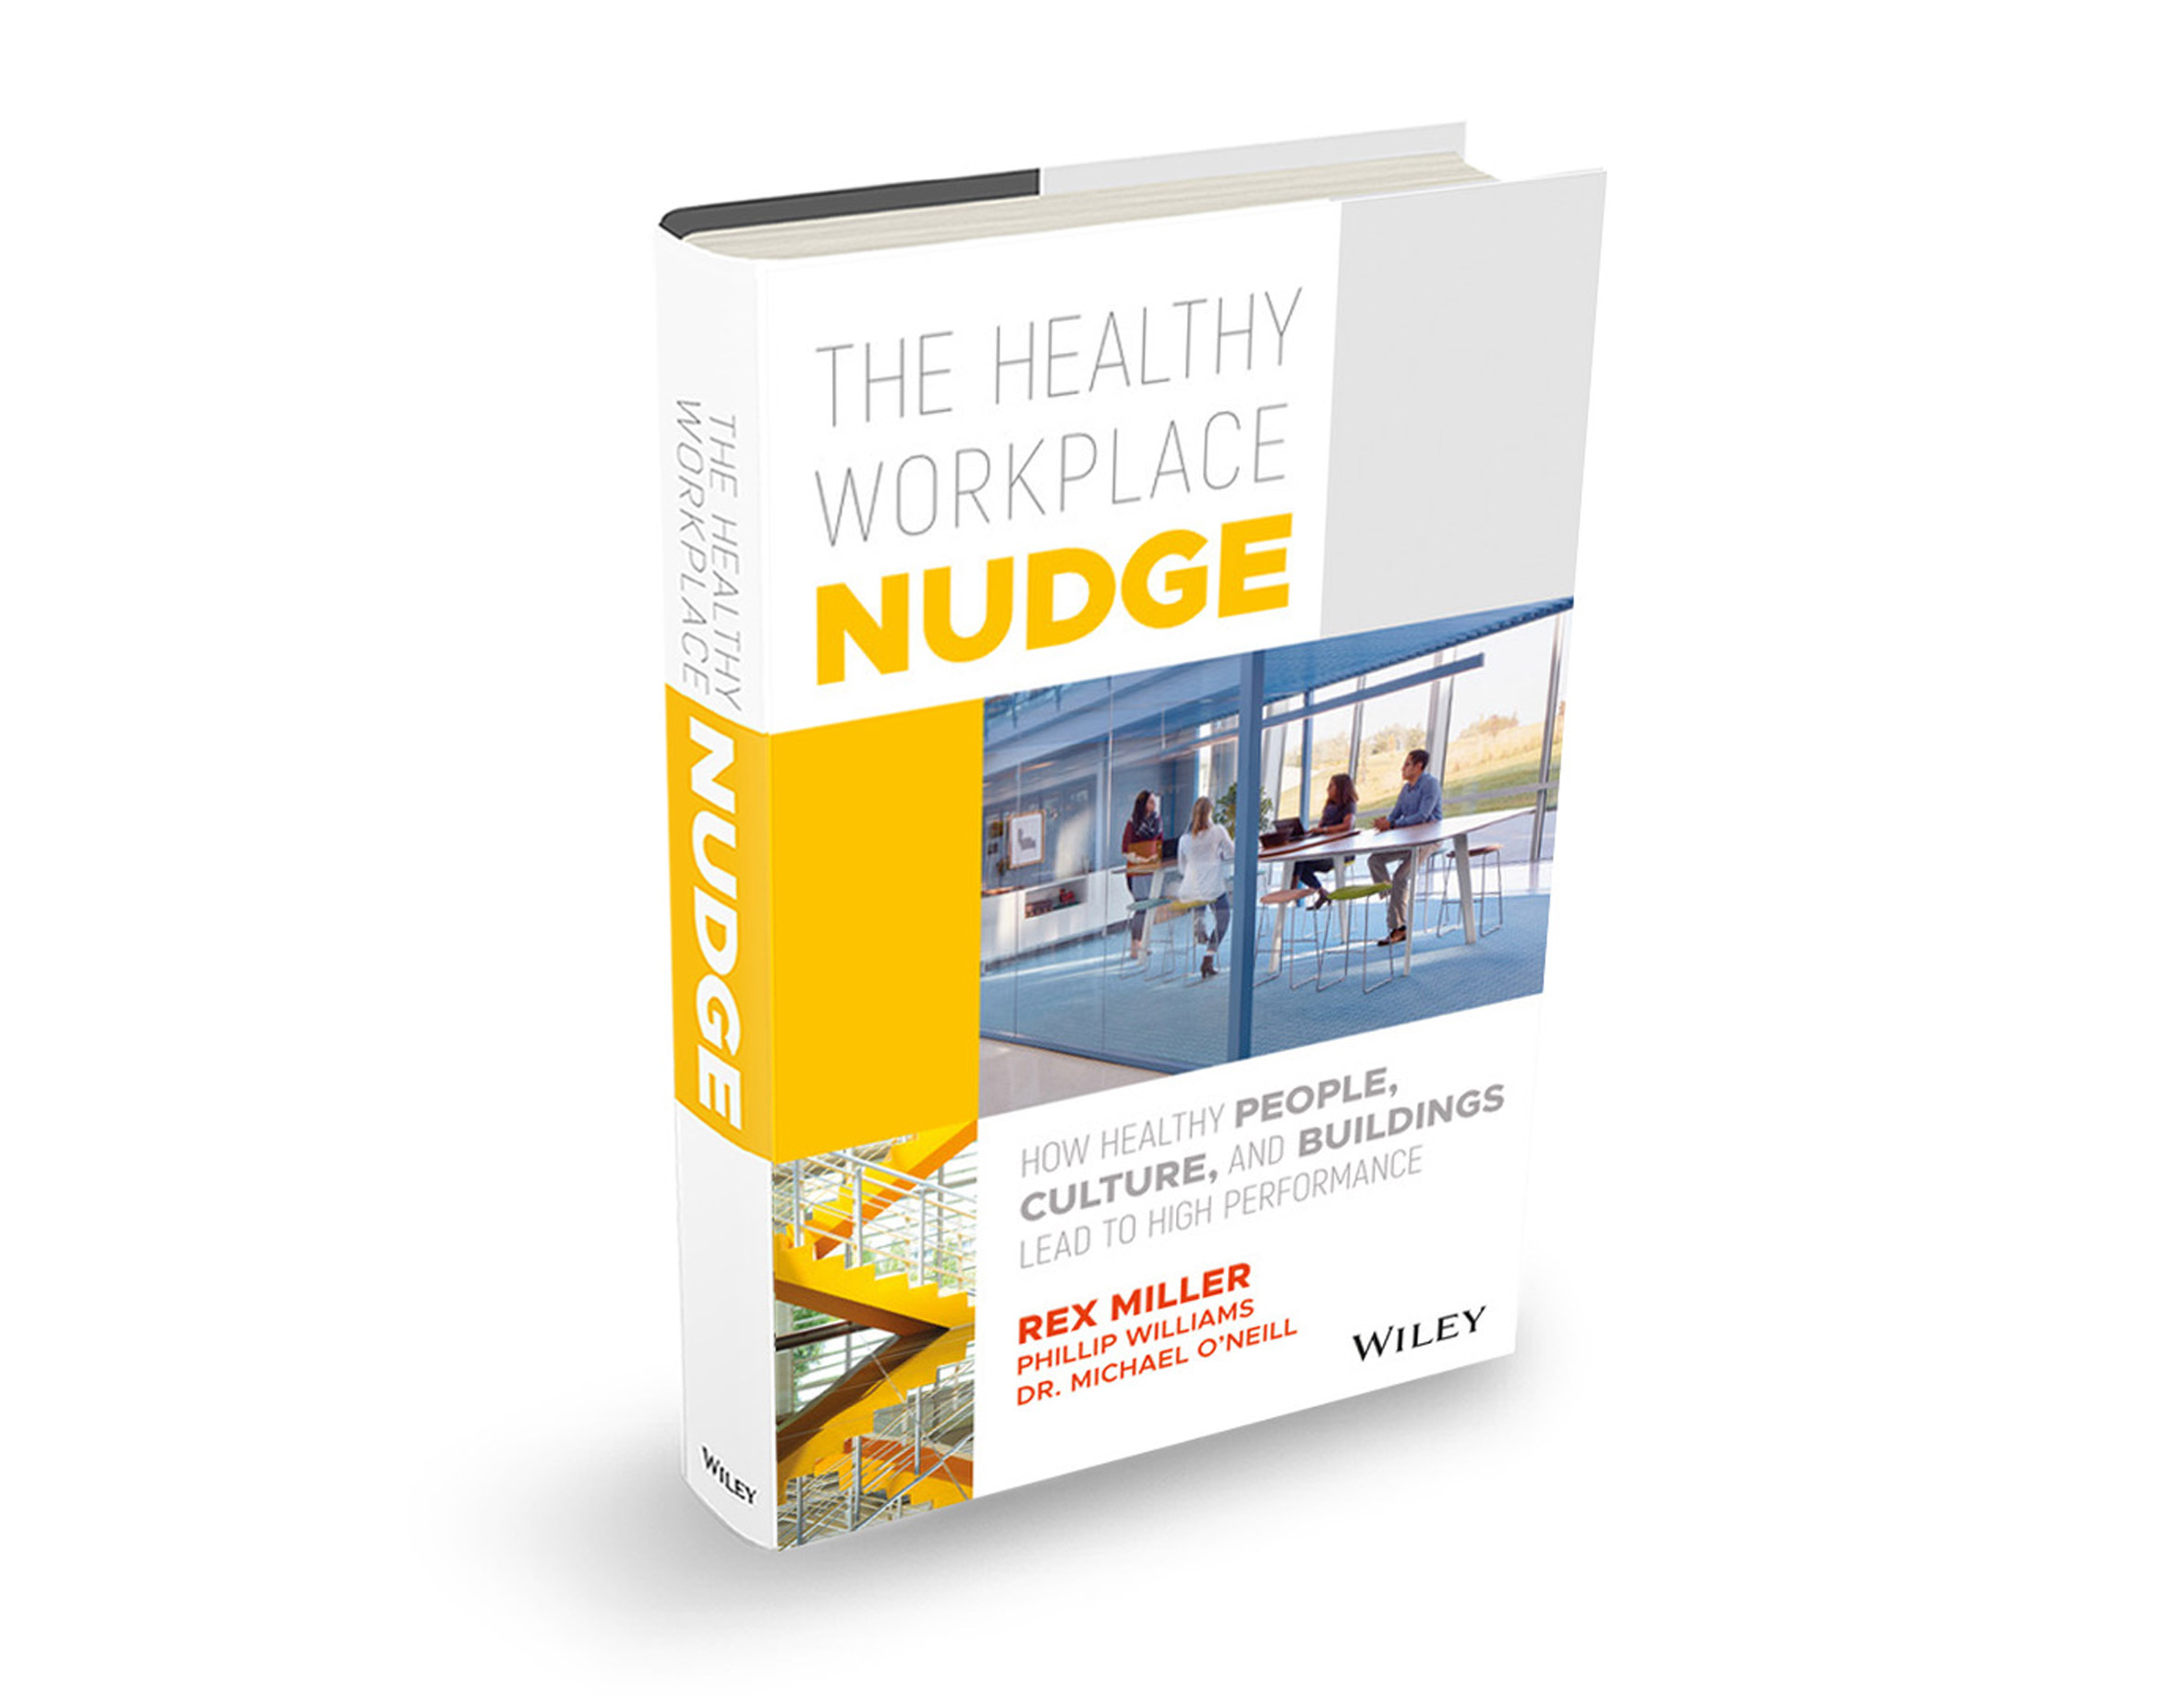 The Healthy Workplace Nudge book discussed in a talk Dezeen hosted with Haworth in Chicago.